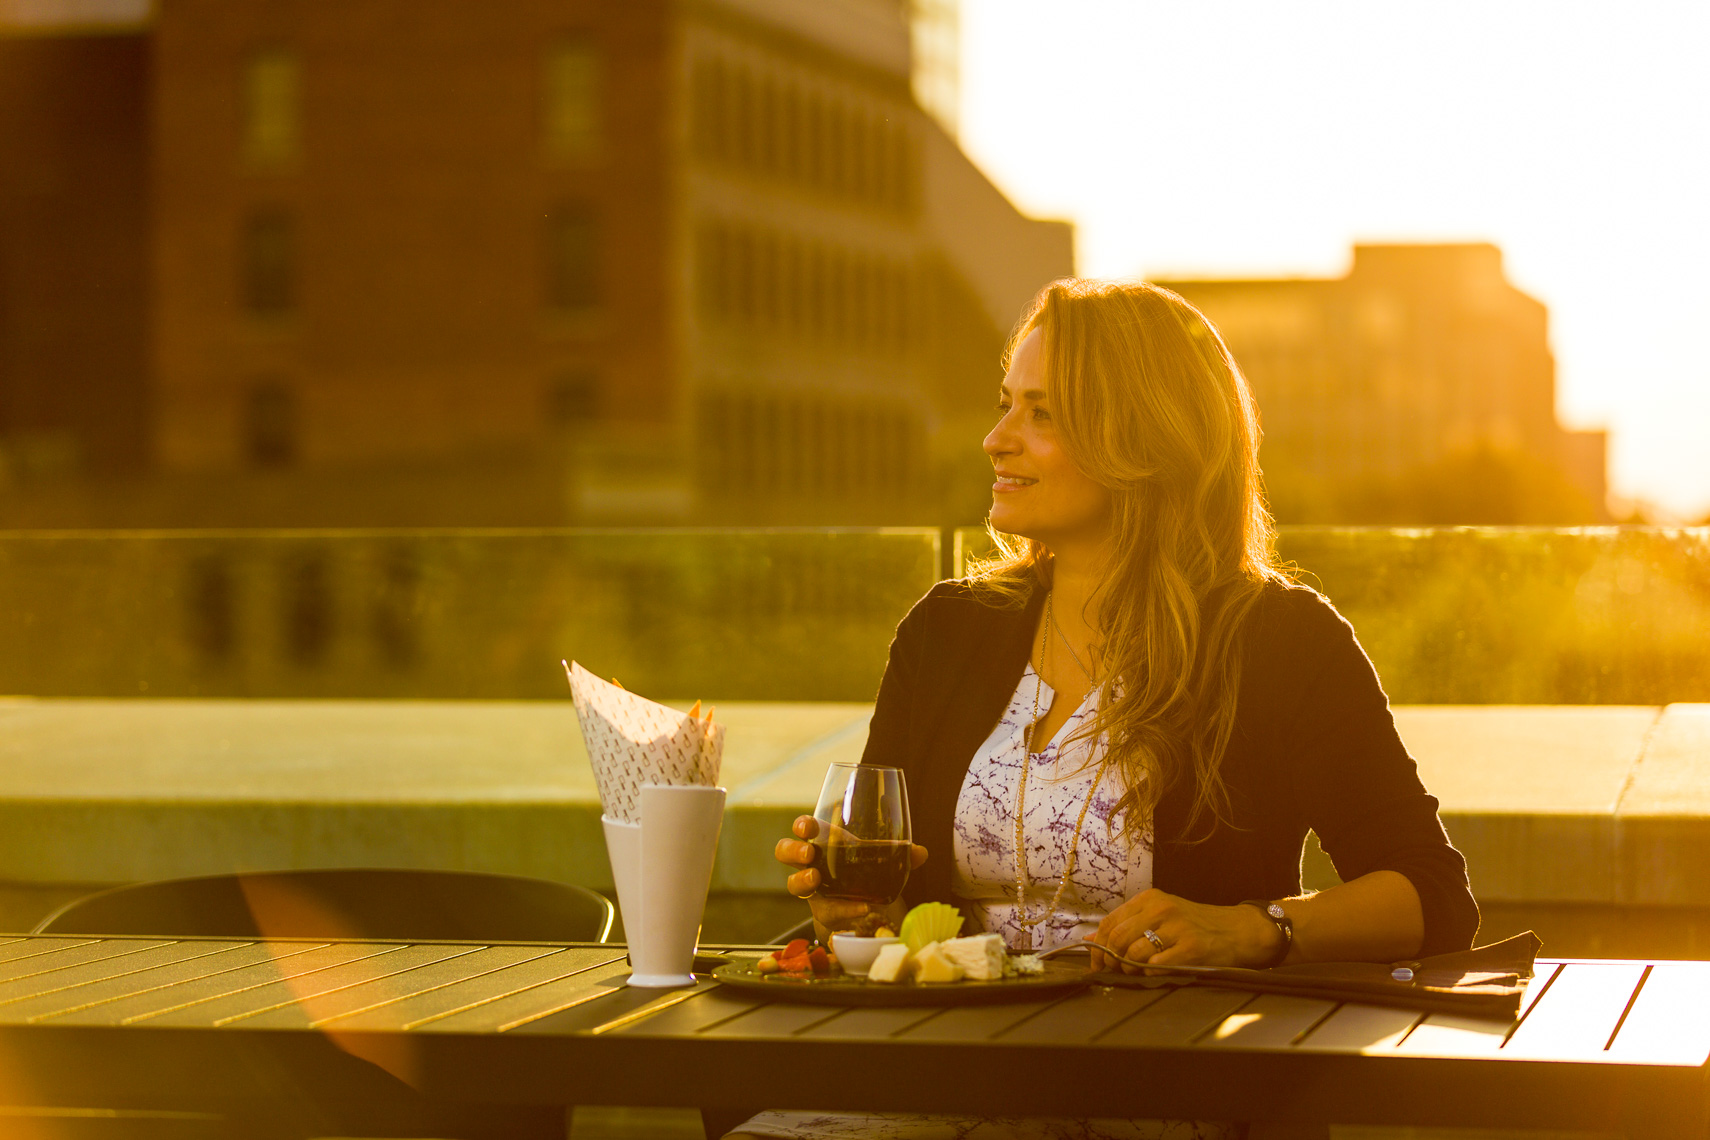 A woman dining and drinking on a rooftop restaurant in downtown Jacksonville Florida